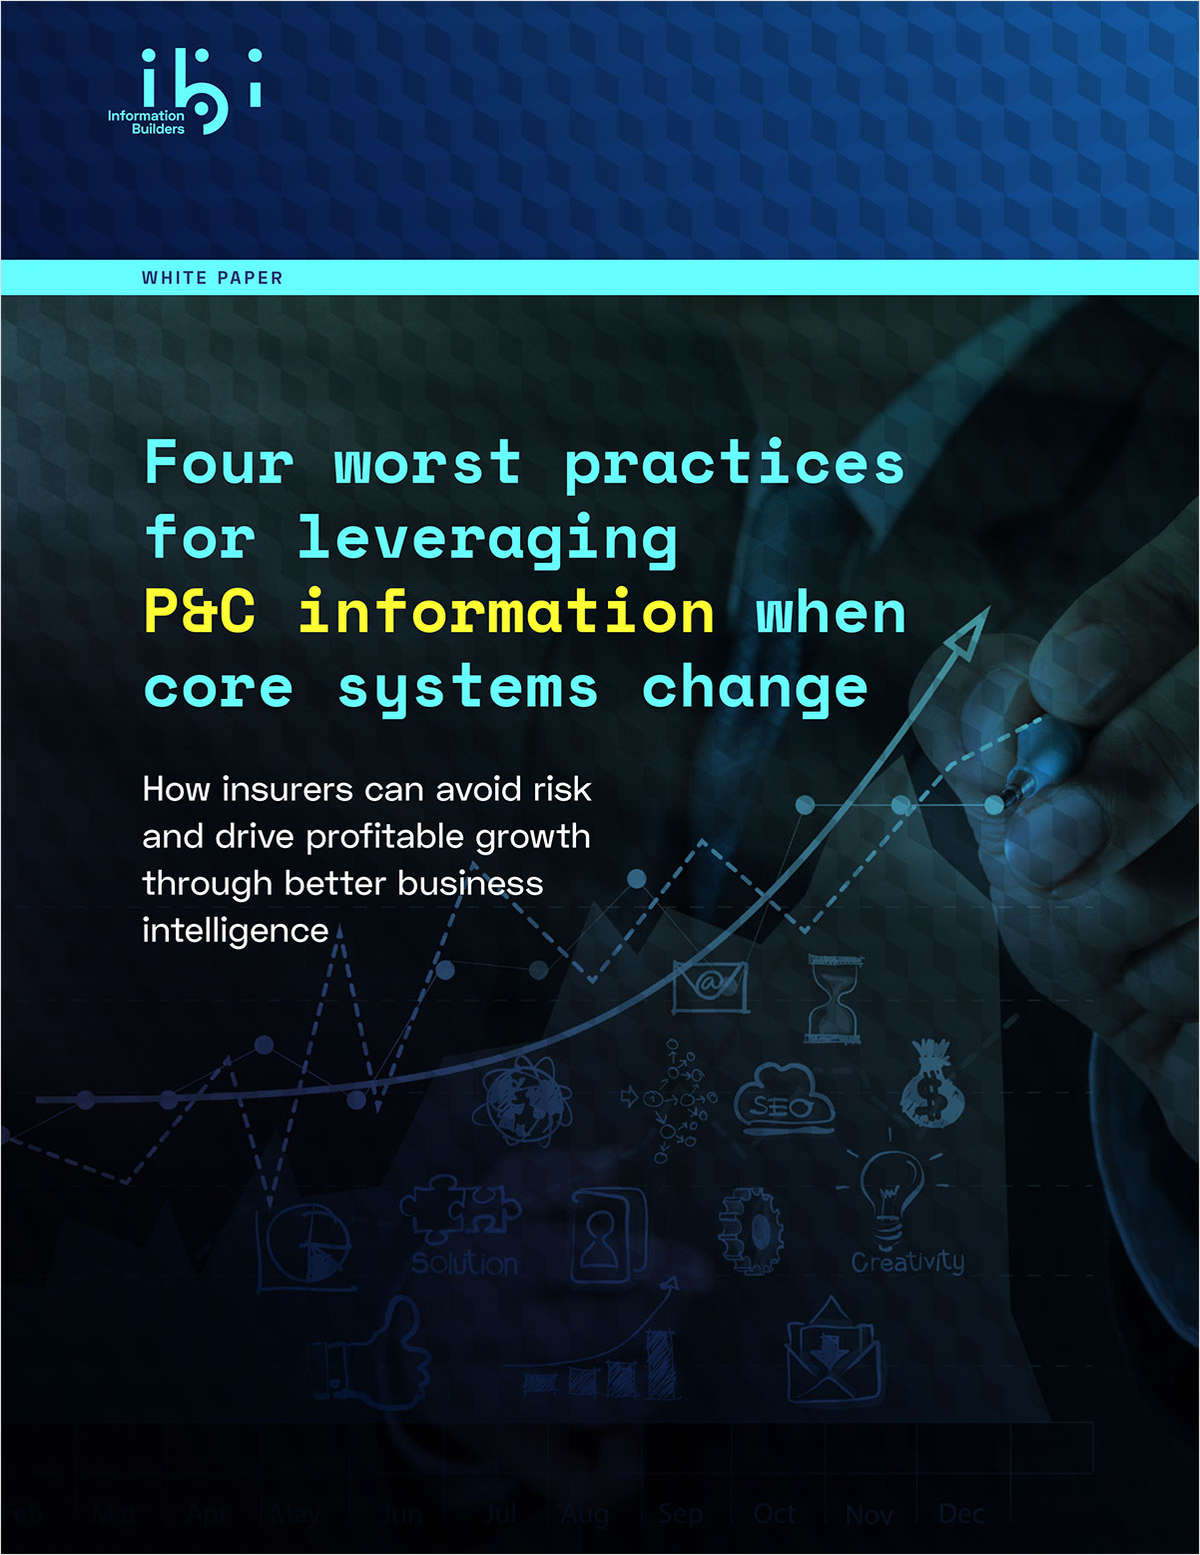 Four worst practices to avoid when core systems change